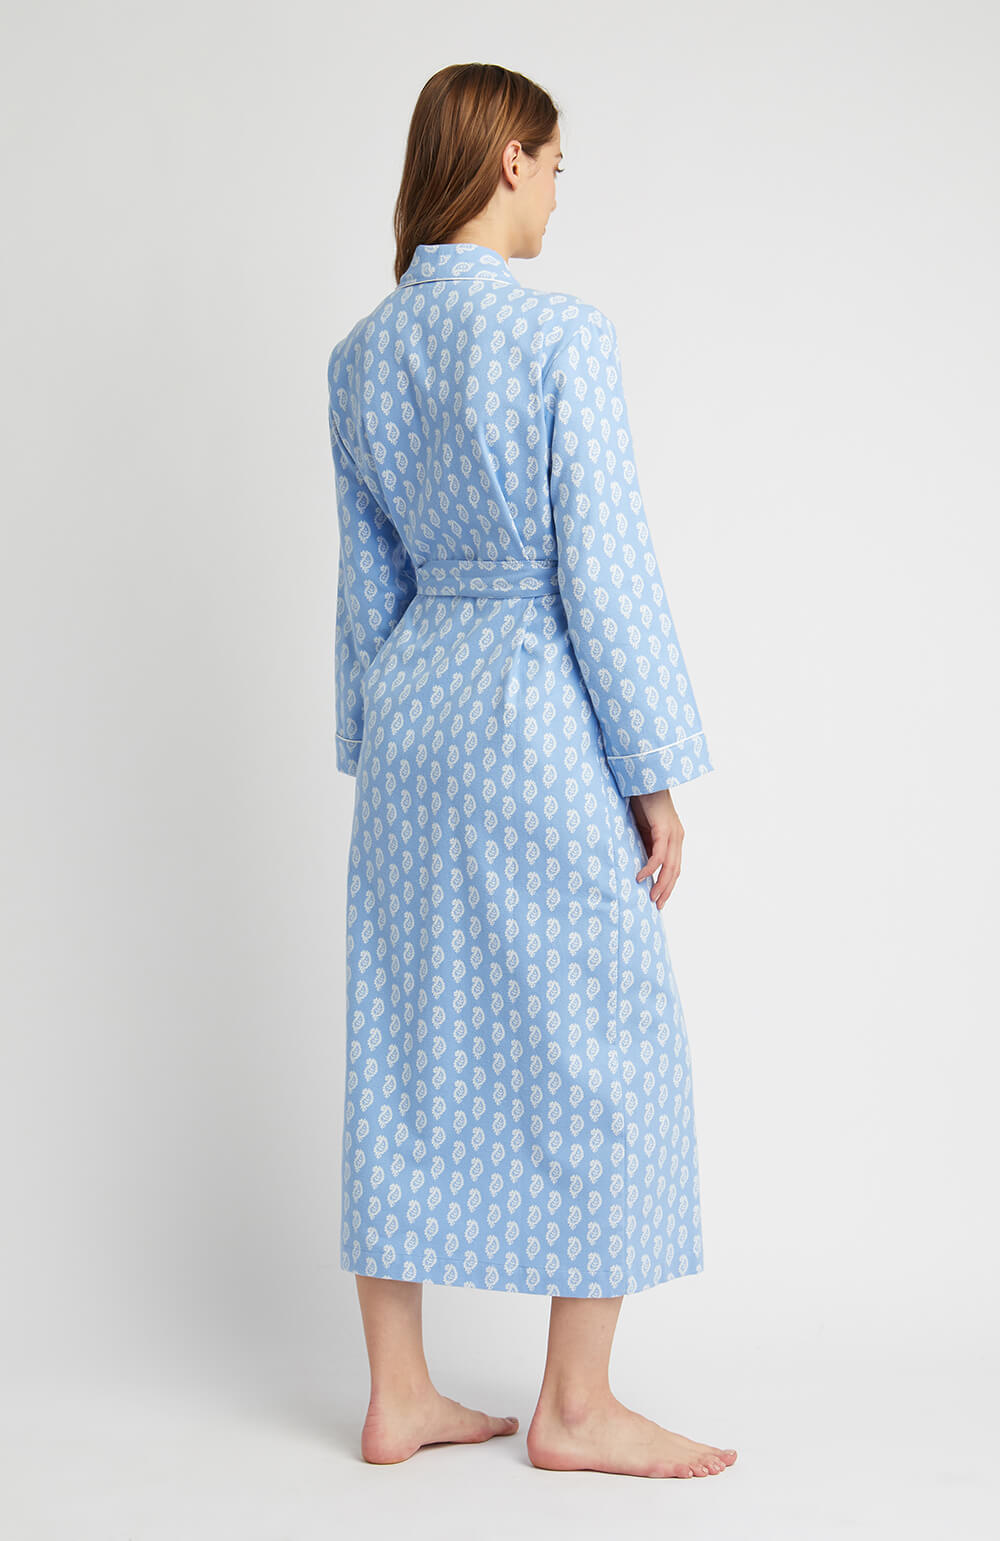 Brushed Pastel Gown (bldg) - Blue Paisley | Bonsoir of London